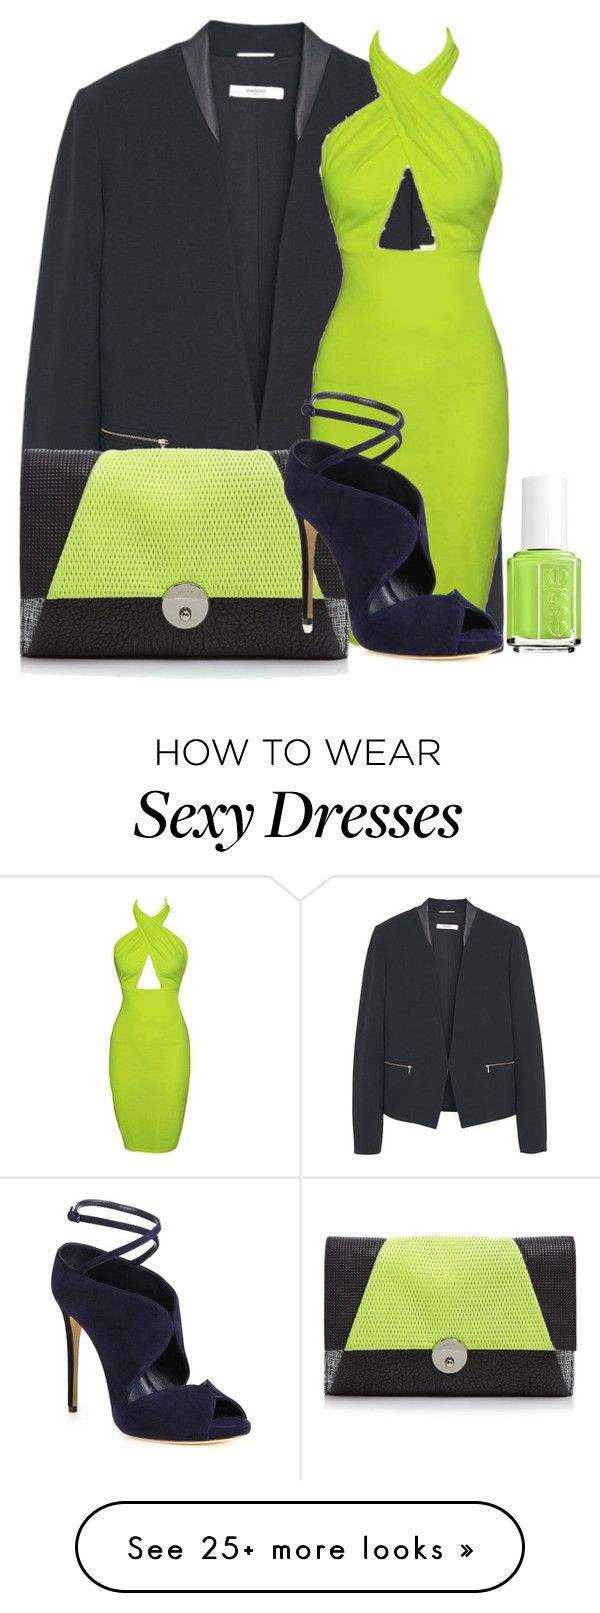 """""""lime dress"""" by missgirlgiuli on Polyvore featuring MANGO, Essie, Milly, Casadei, women's clothing, women's fashion, women, female, woman and misses"""